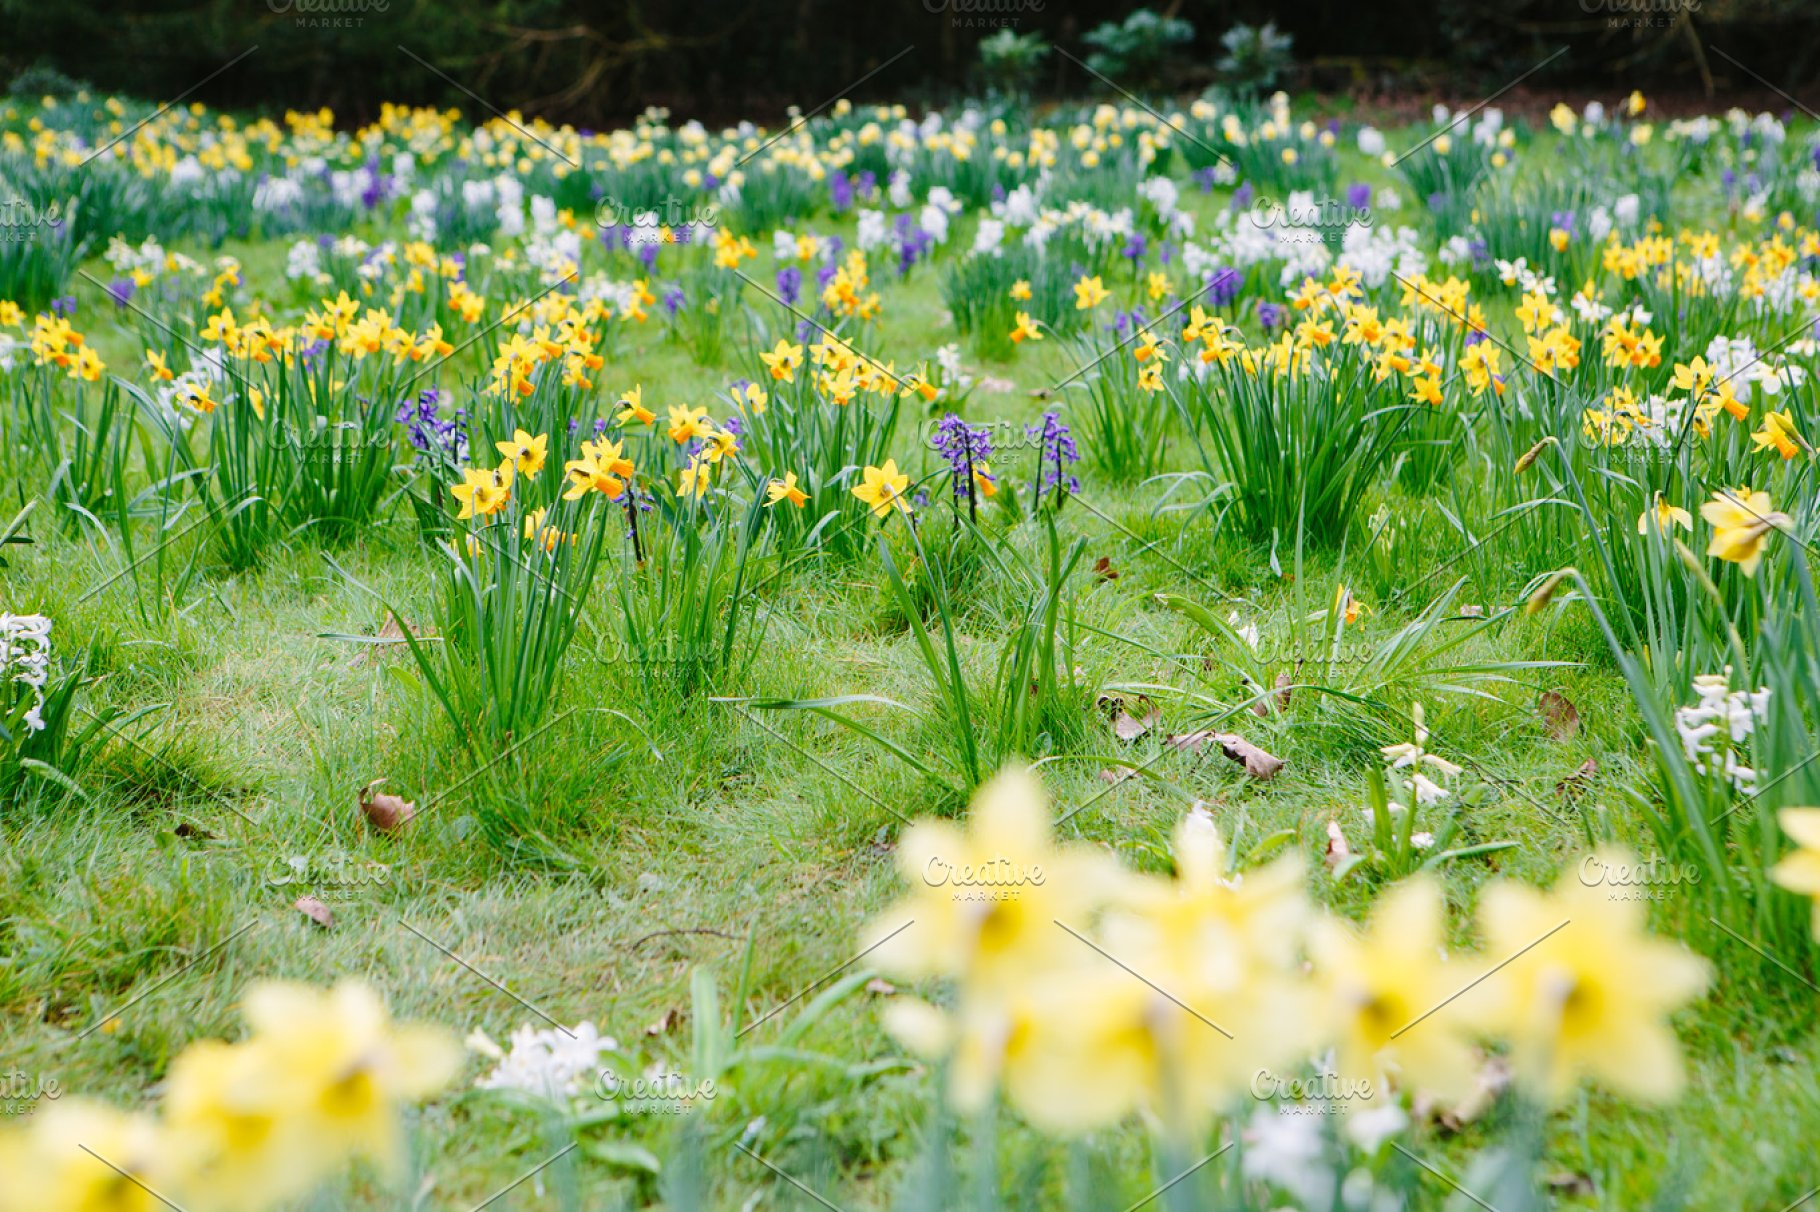 Spring Flowers Daffodils Hyacinth High Quality Nature Stock